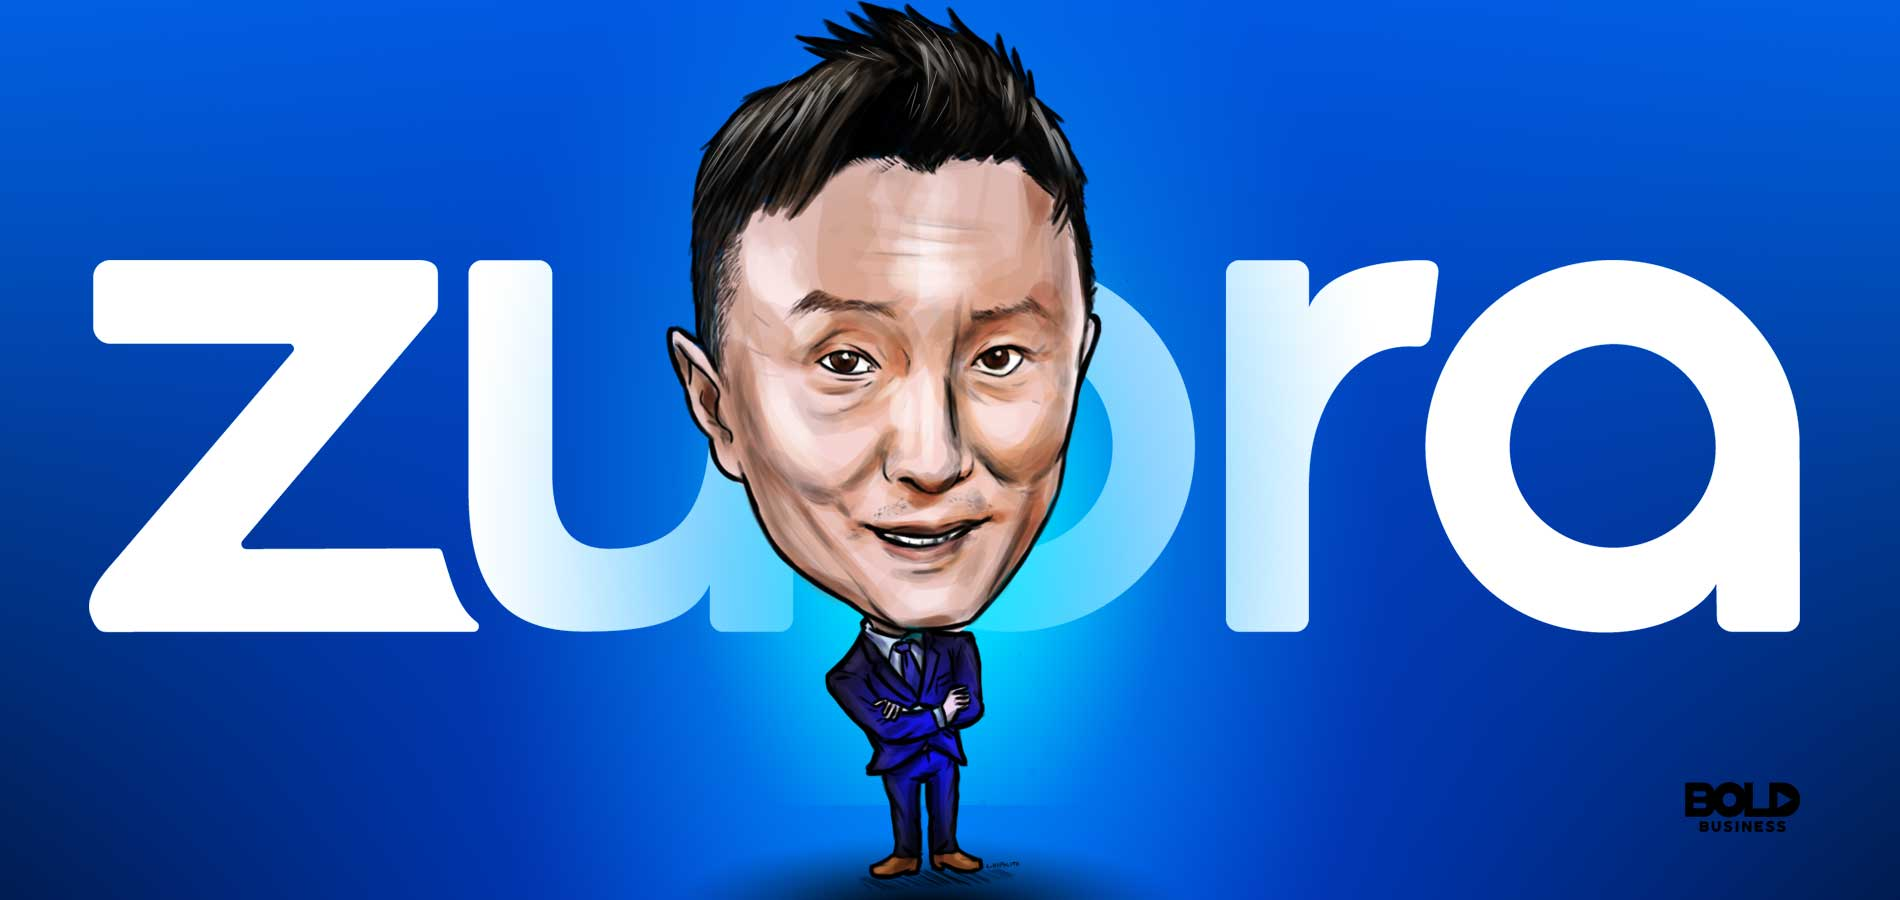 Tien Tzuo of Zuora has used his bold leadership traits to help guide businesses into subscription economics.